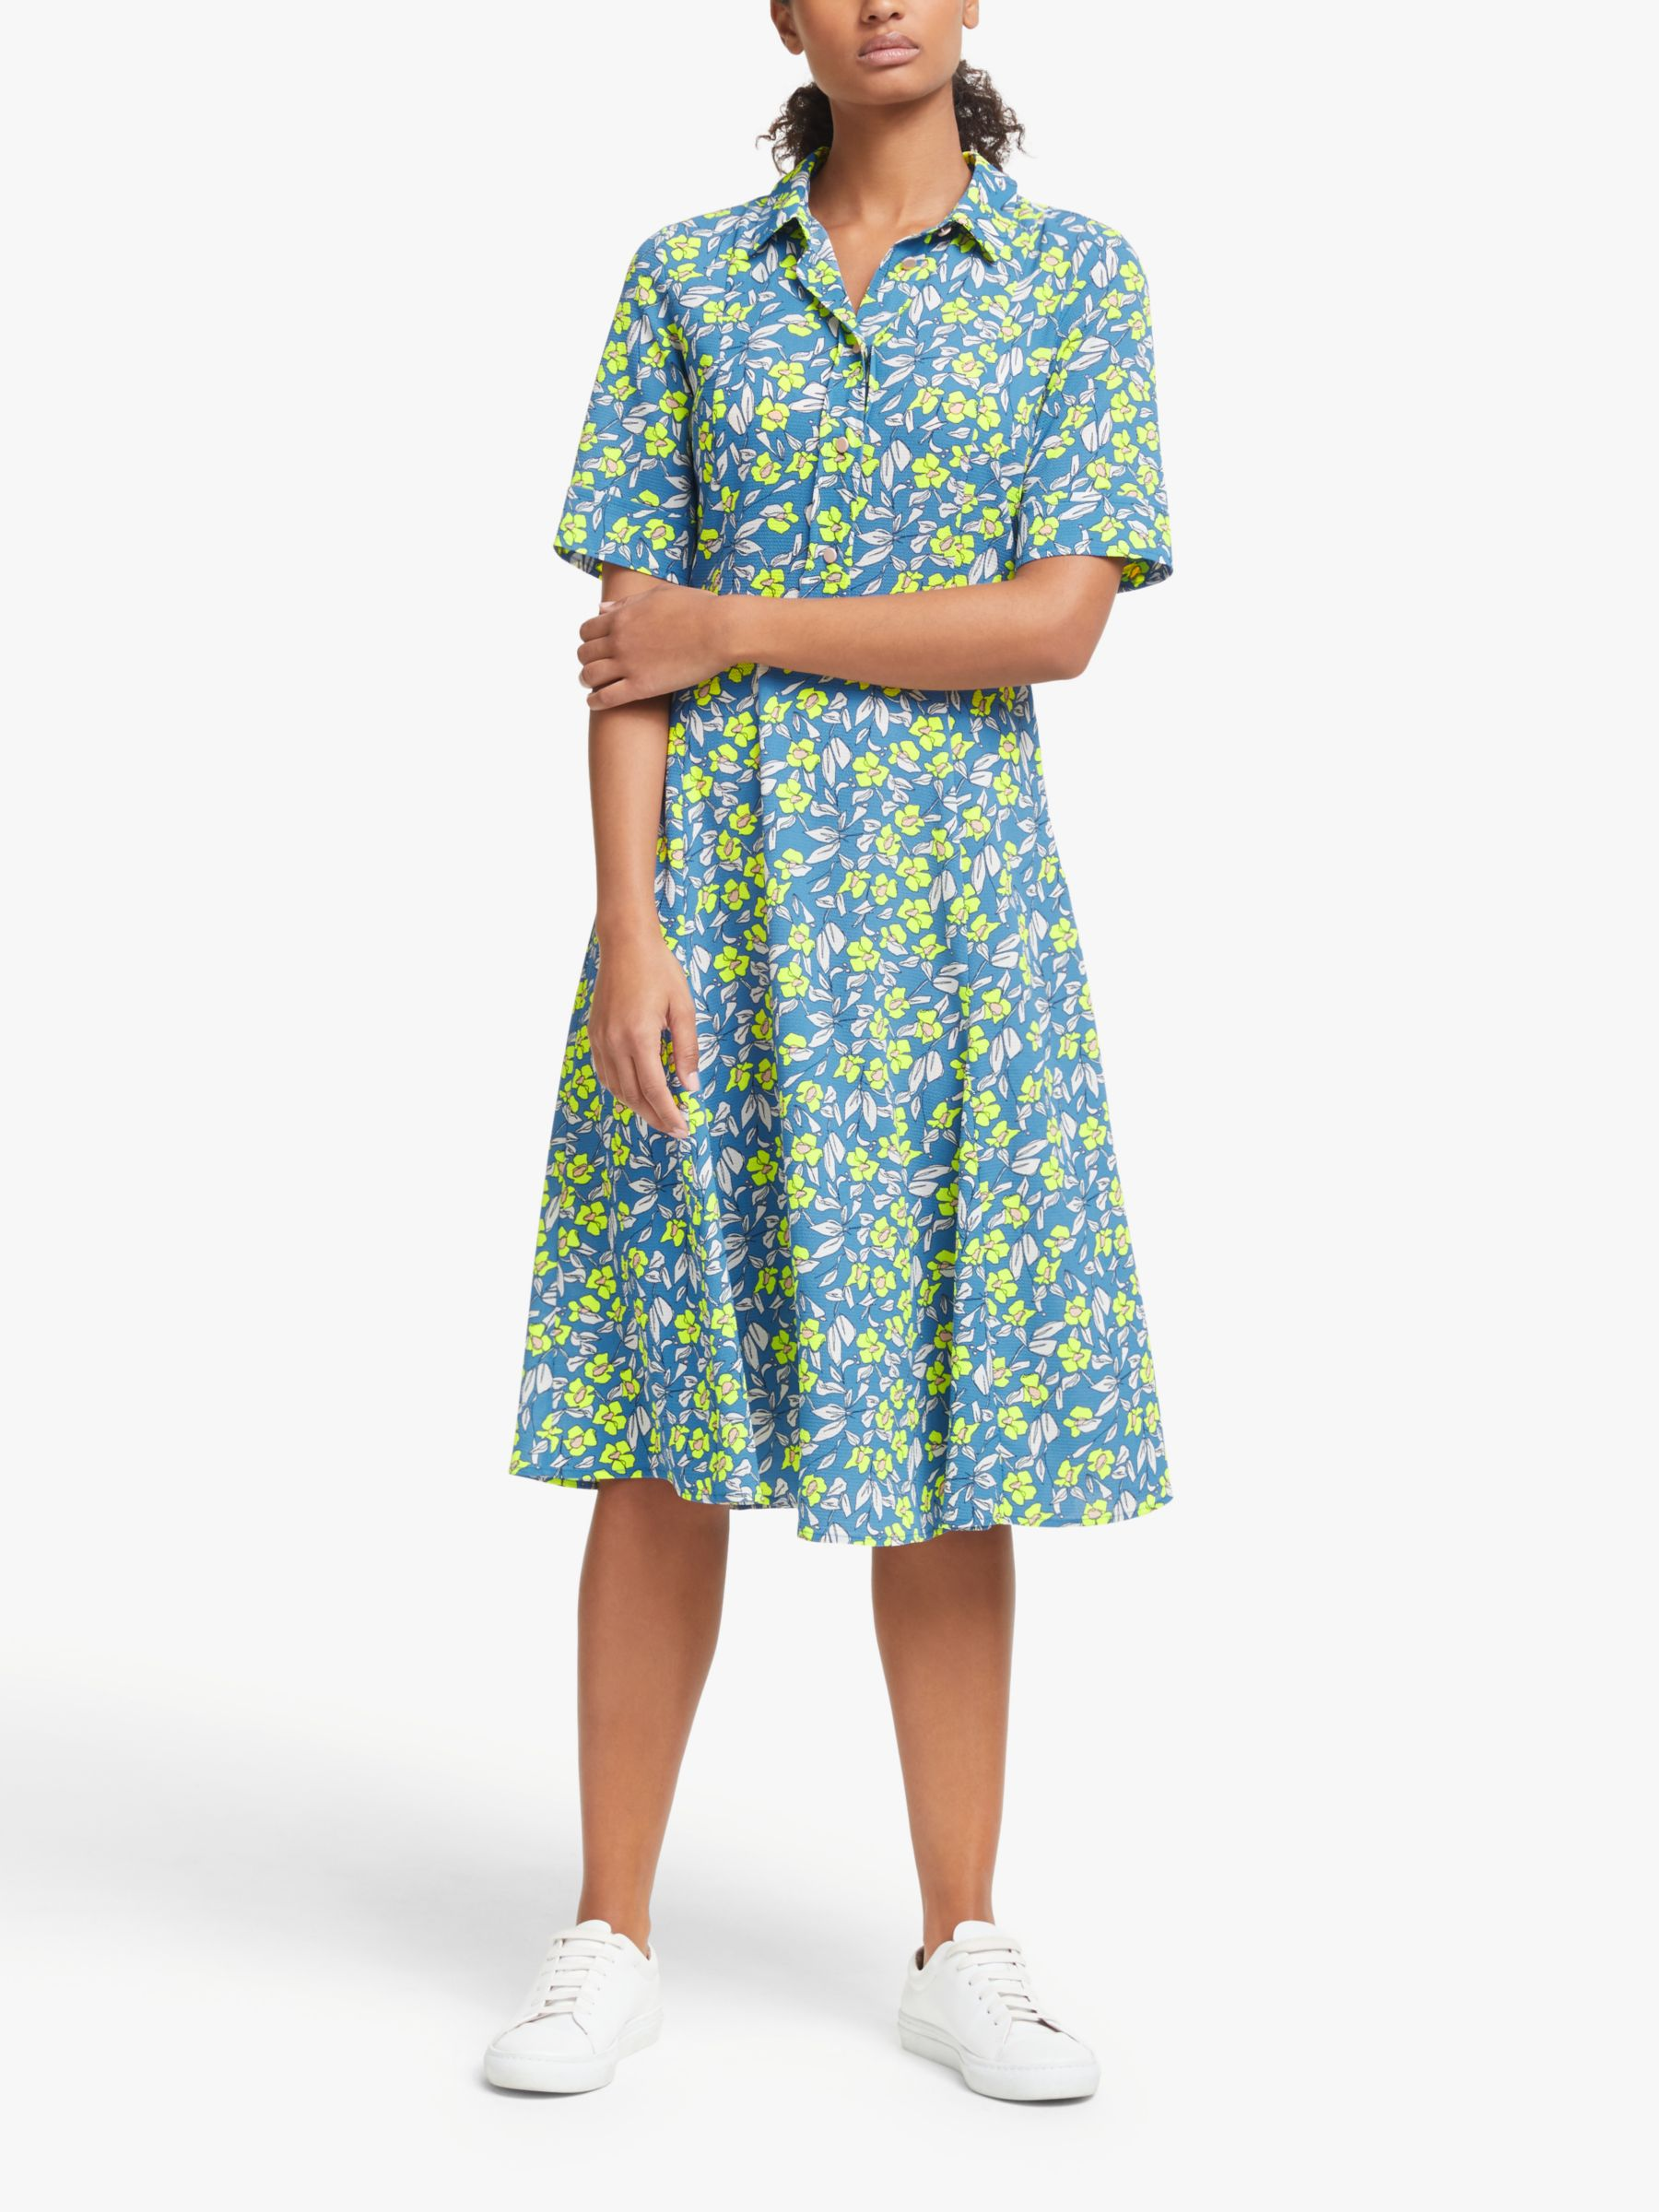 Numph Numph Nuaideen Floral Shirt Dress, Pacific Coast